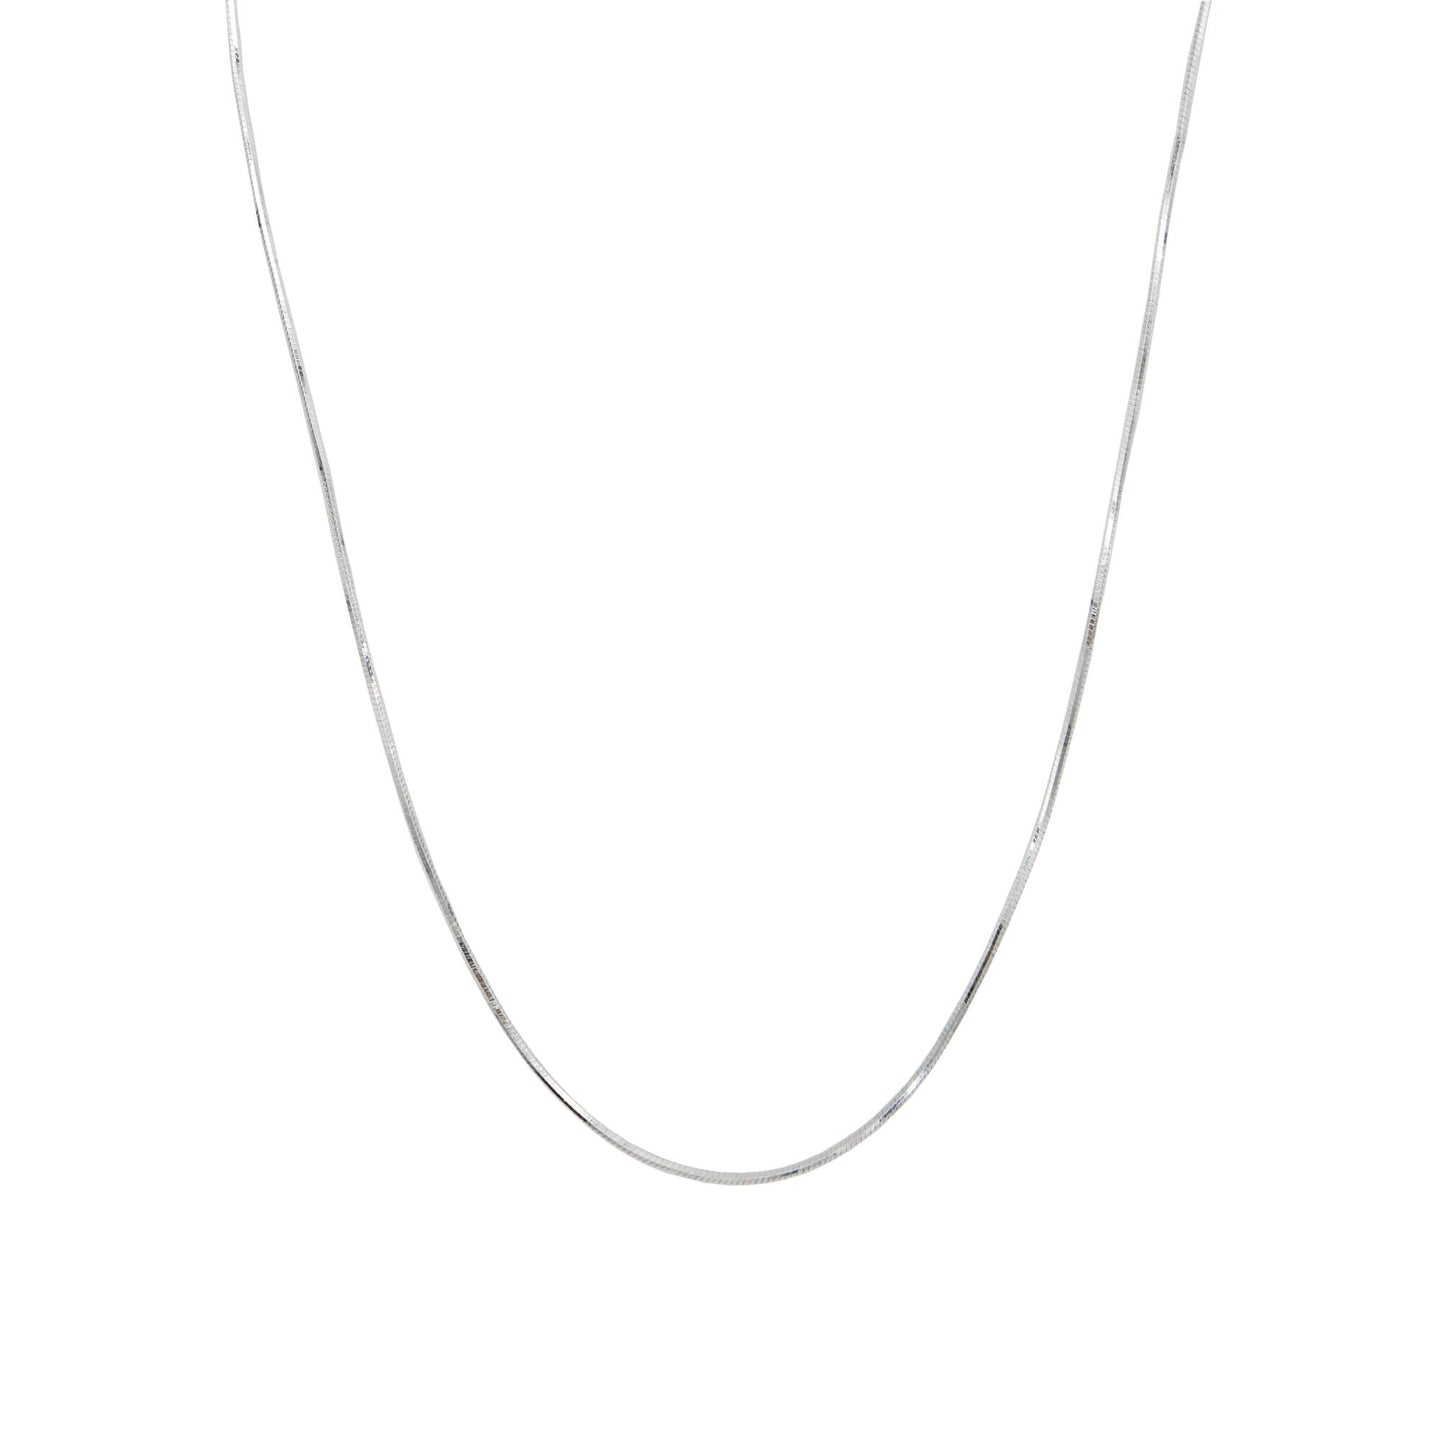 Sterling silver snack chain necklace on a white background.